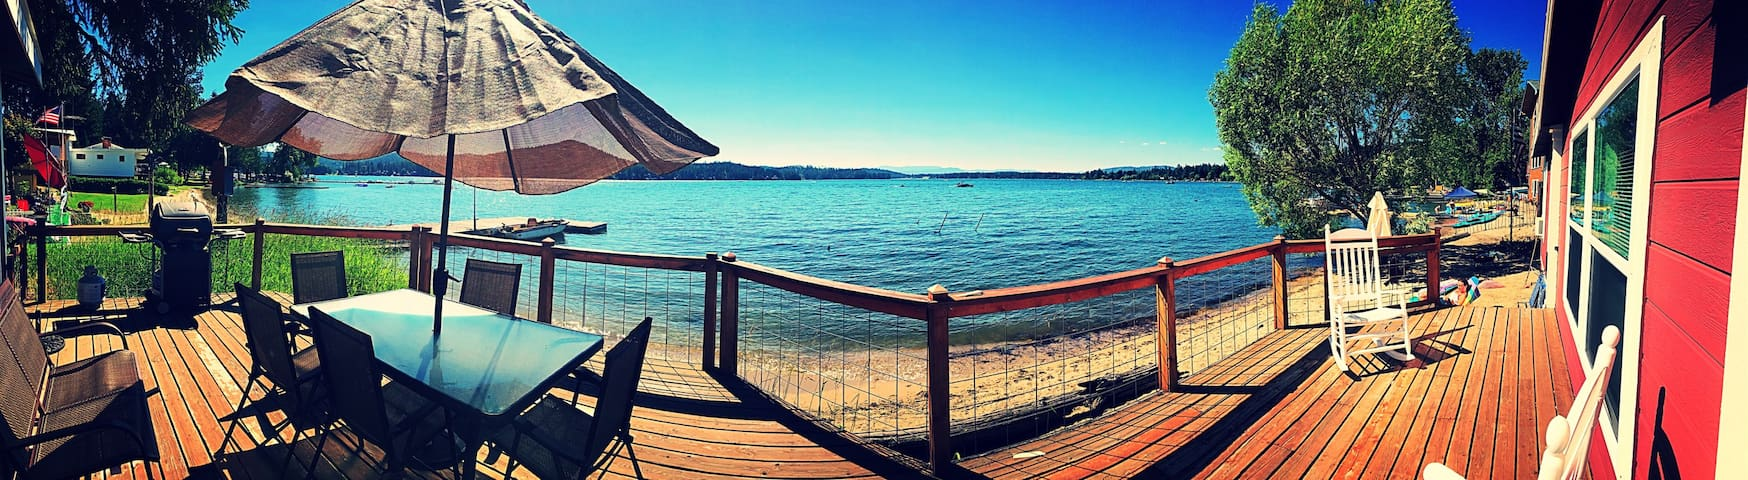 Loon Lake Waterfront Home- 30 minutes from Spokane